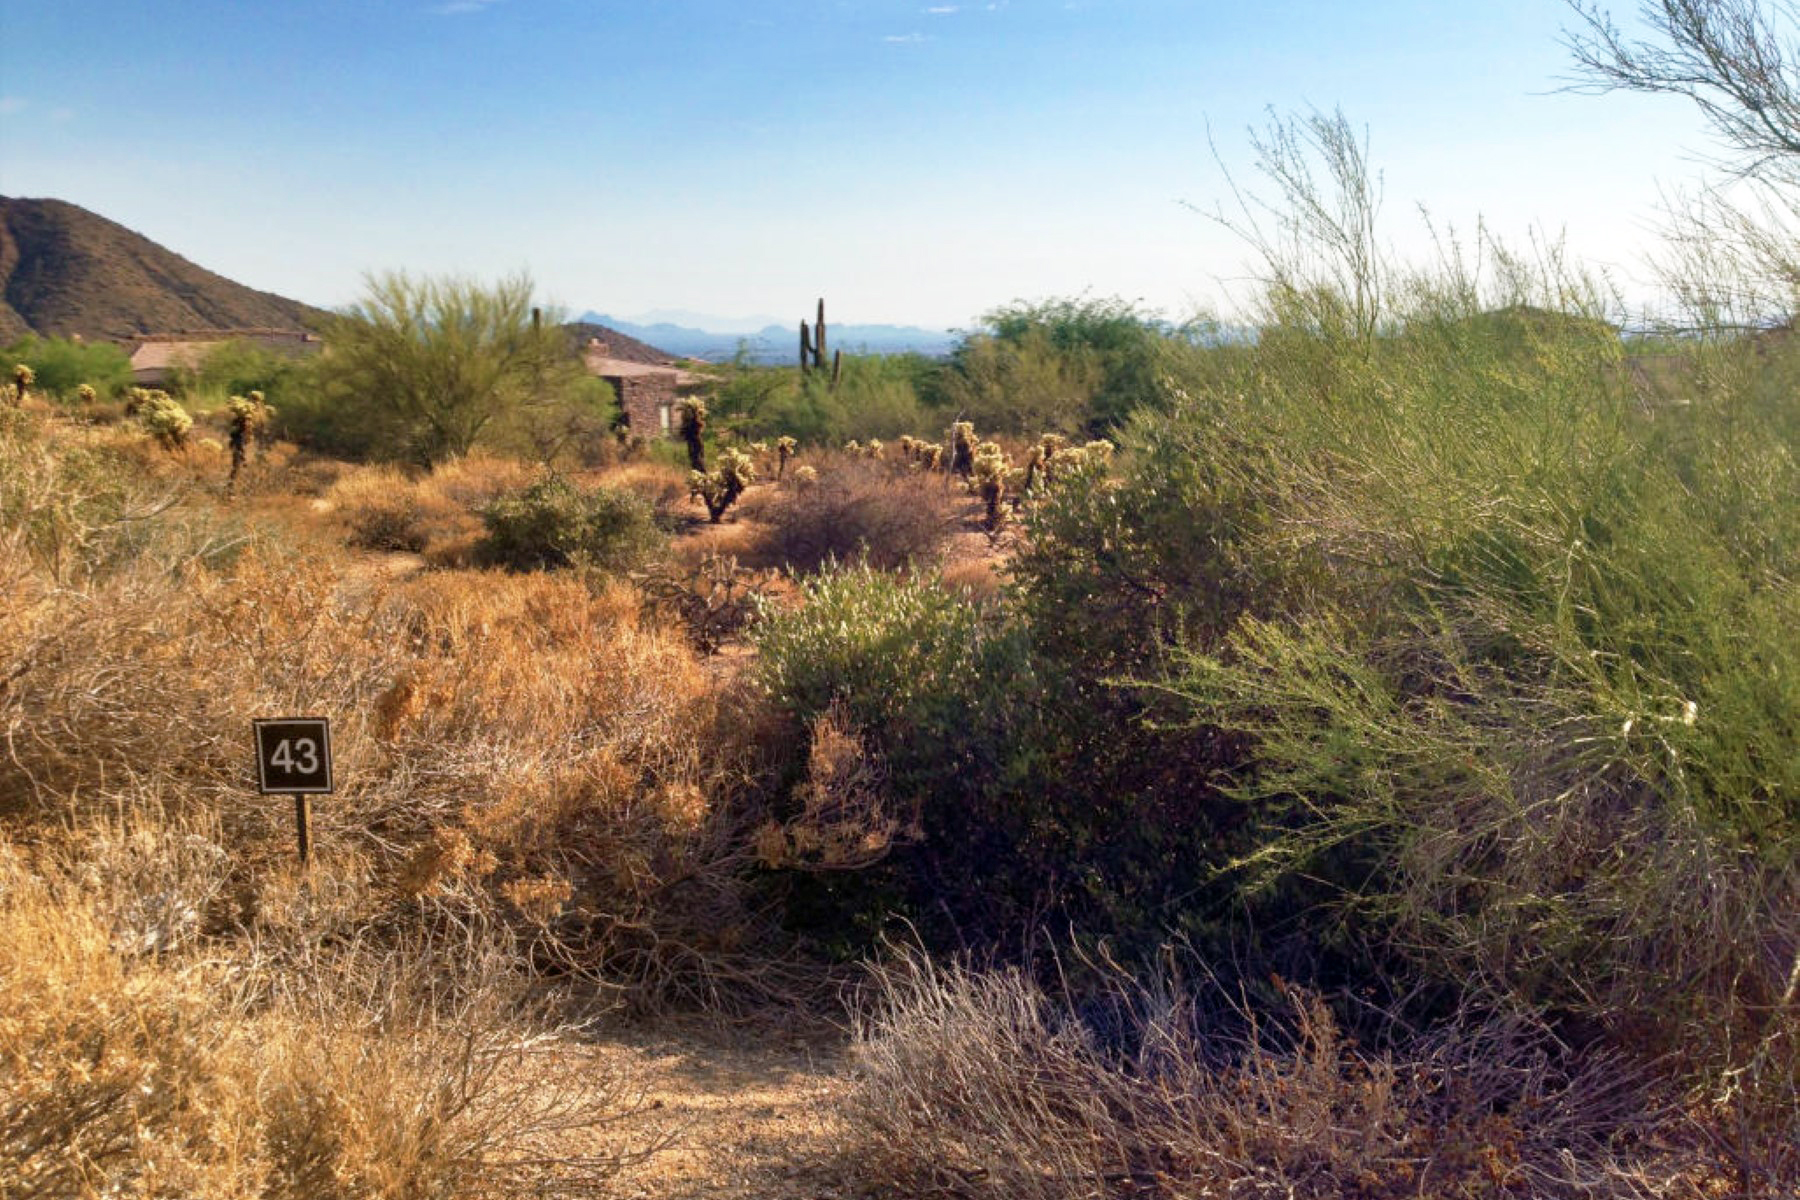 Land for Sale at Best Priced Homesite In Guard Gated Artesano In Troon Village 24820 N 107th Way #43 Scottsdale, Arizona, 85255 United States